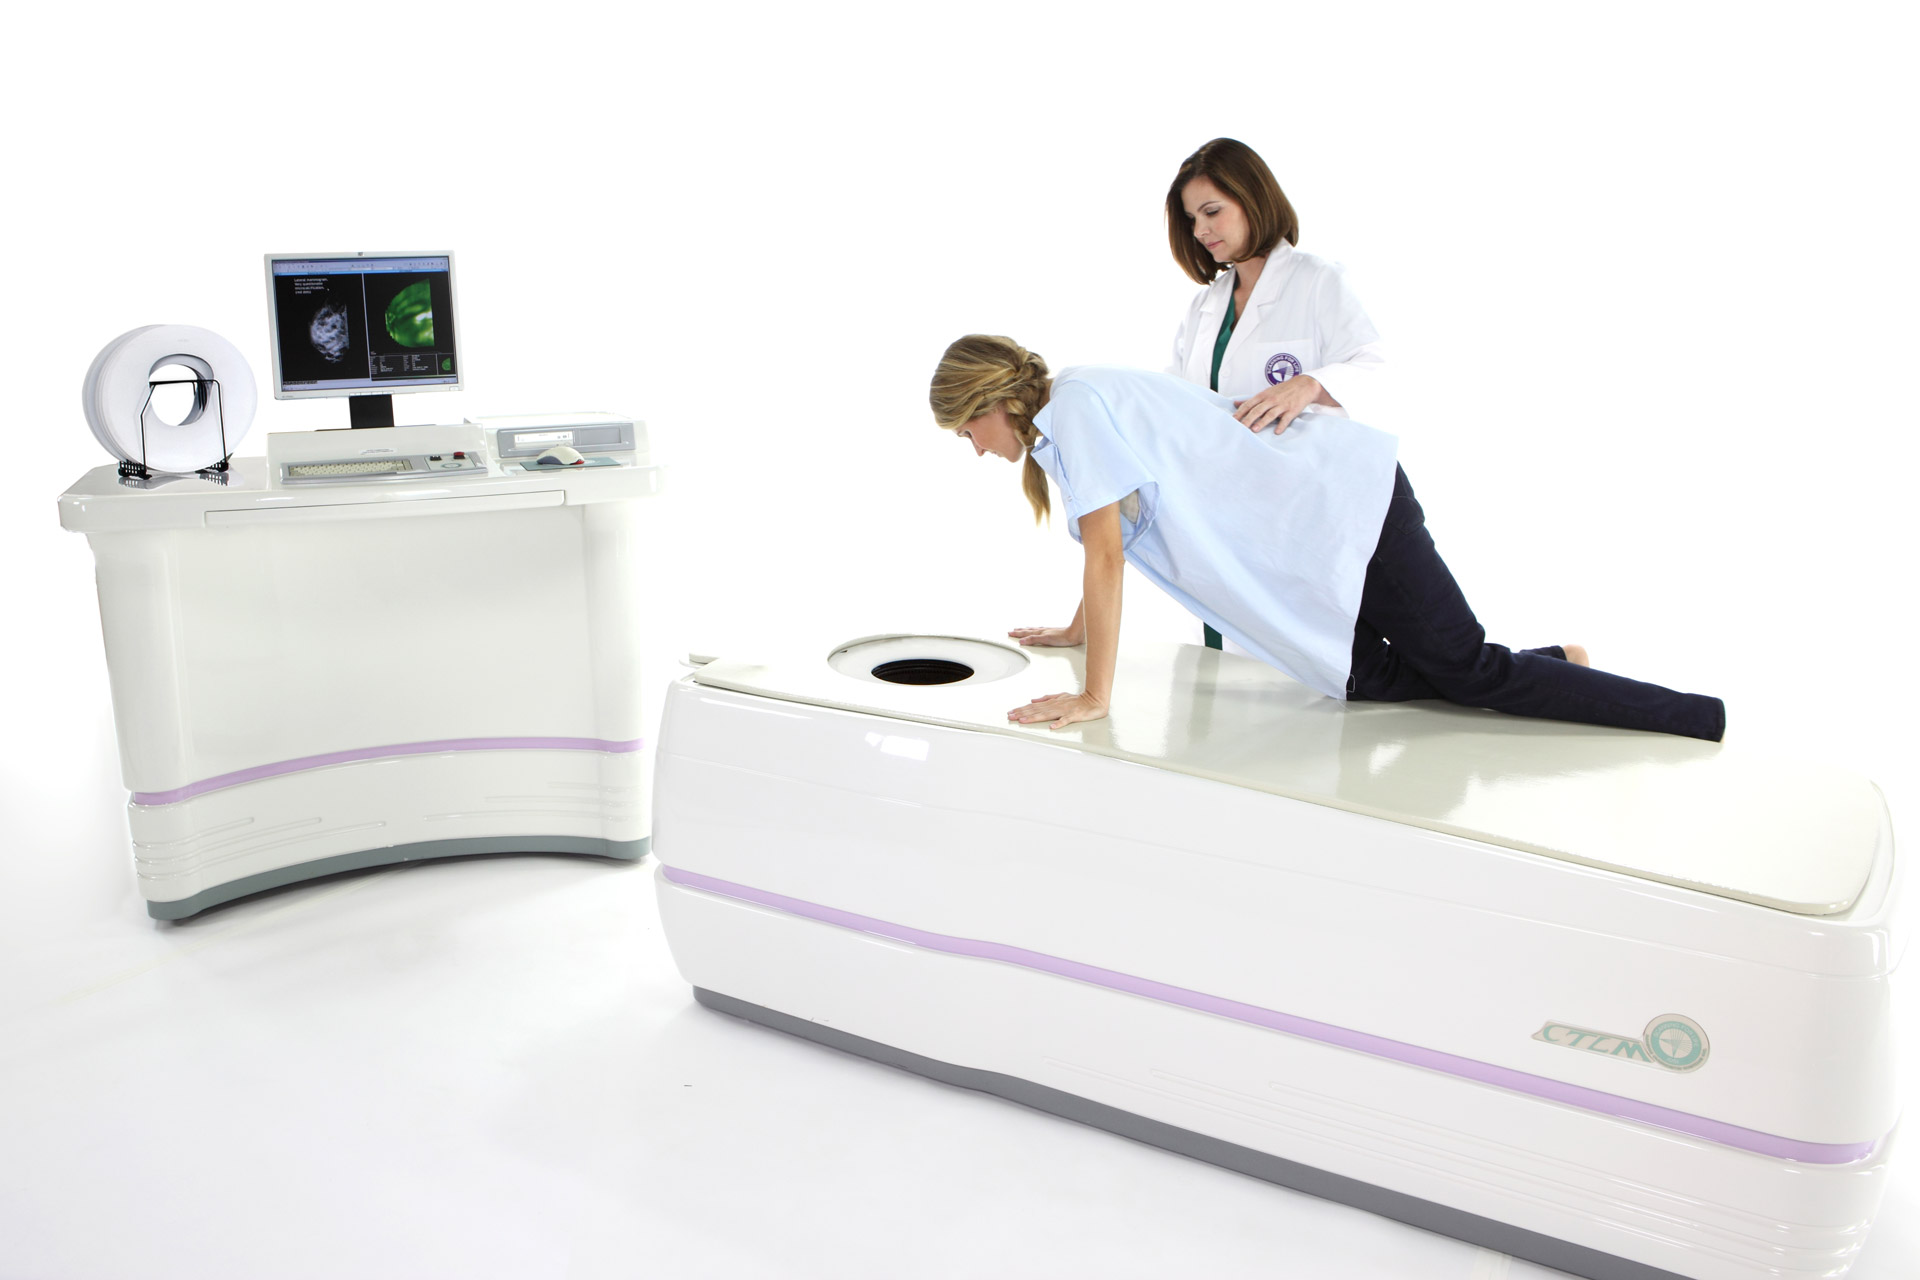 CTLM® – Laser Breast Imaging Without Compression